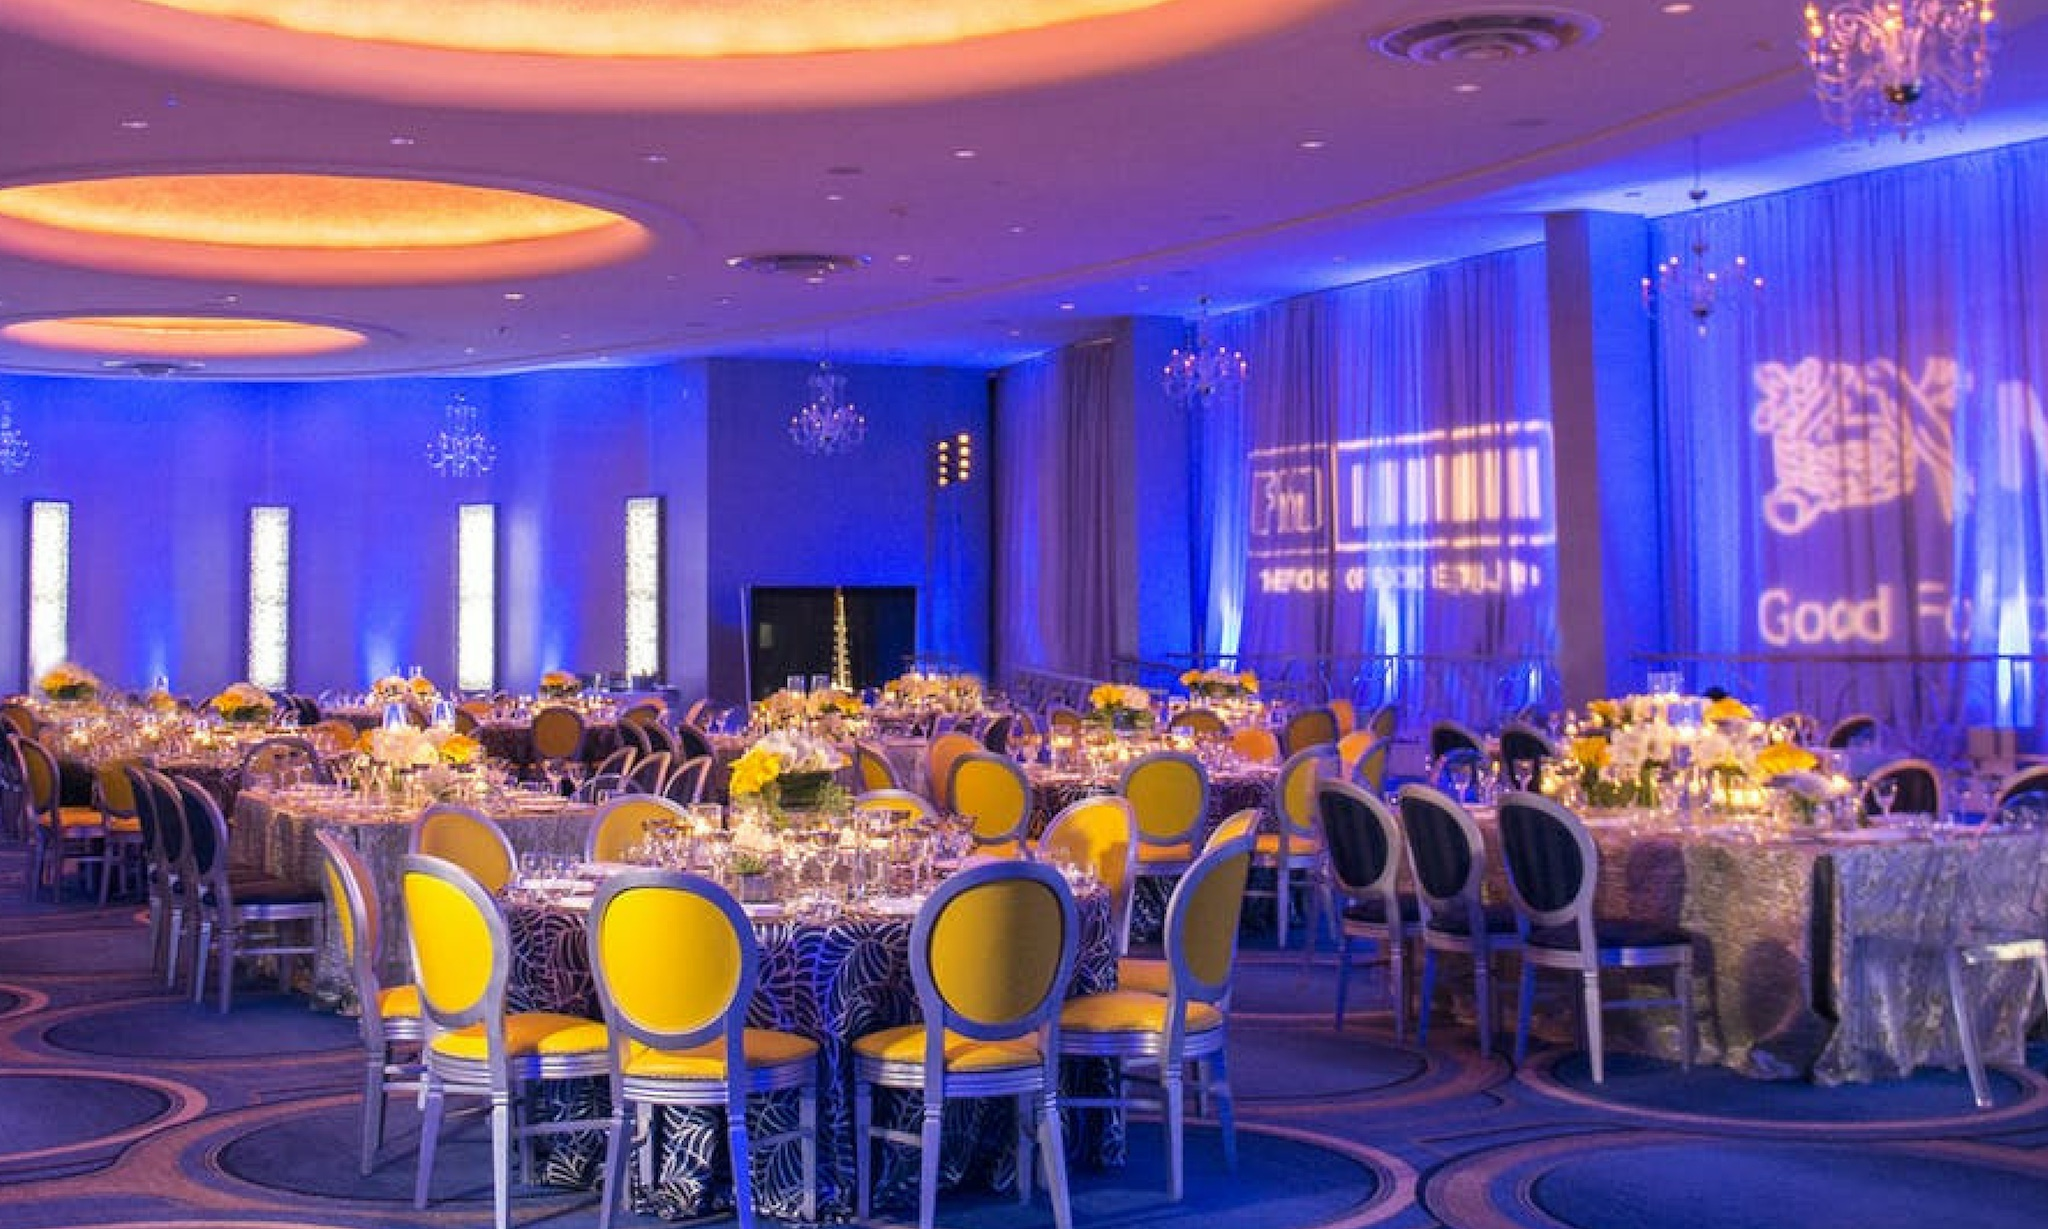 blue uplighting in miami beach ballroom with pops of yellow chairs and chandeliers